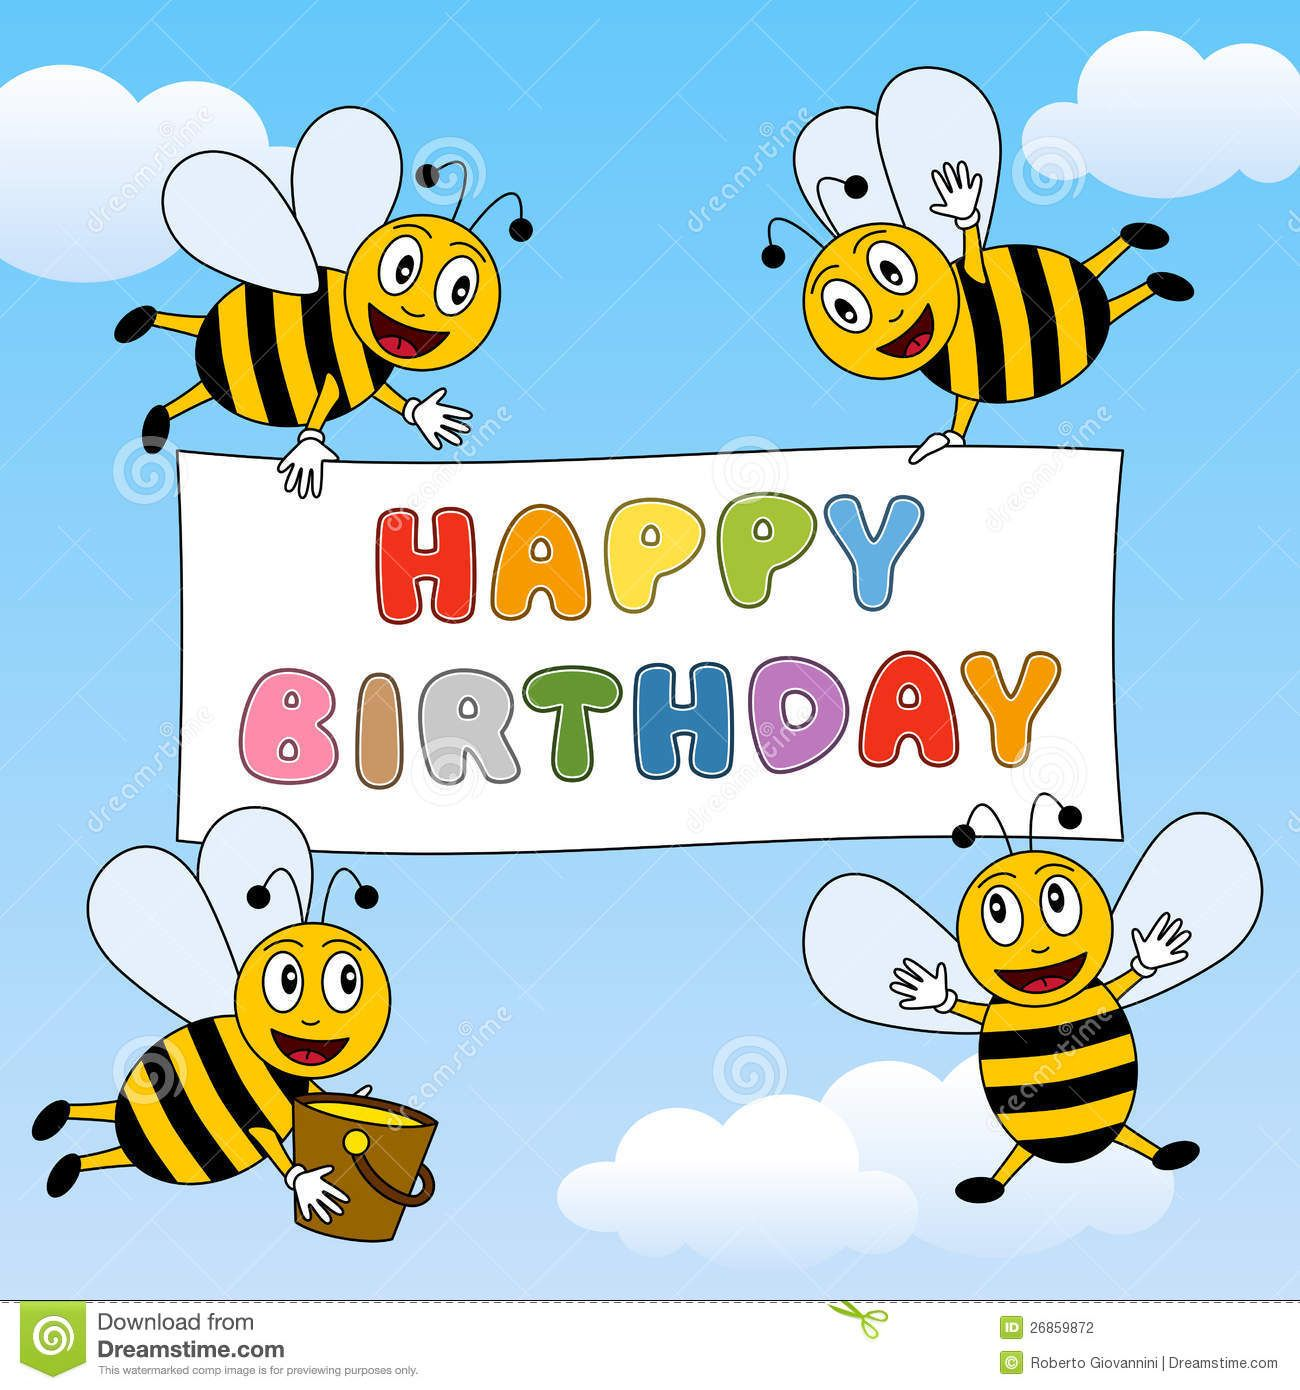 Rezultat iskanja slik za happy birthday beekeeper | Happy ...